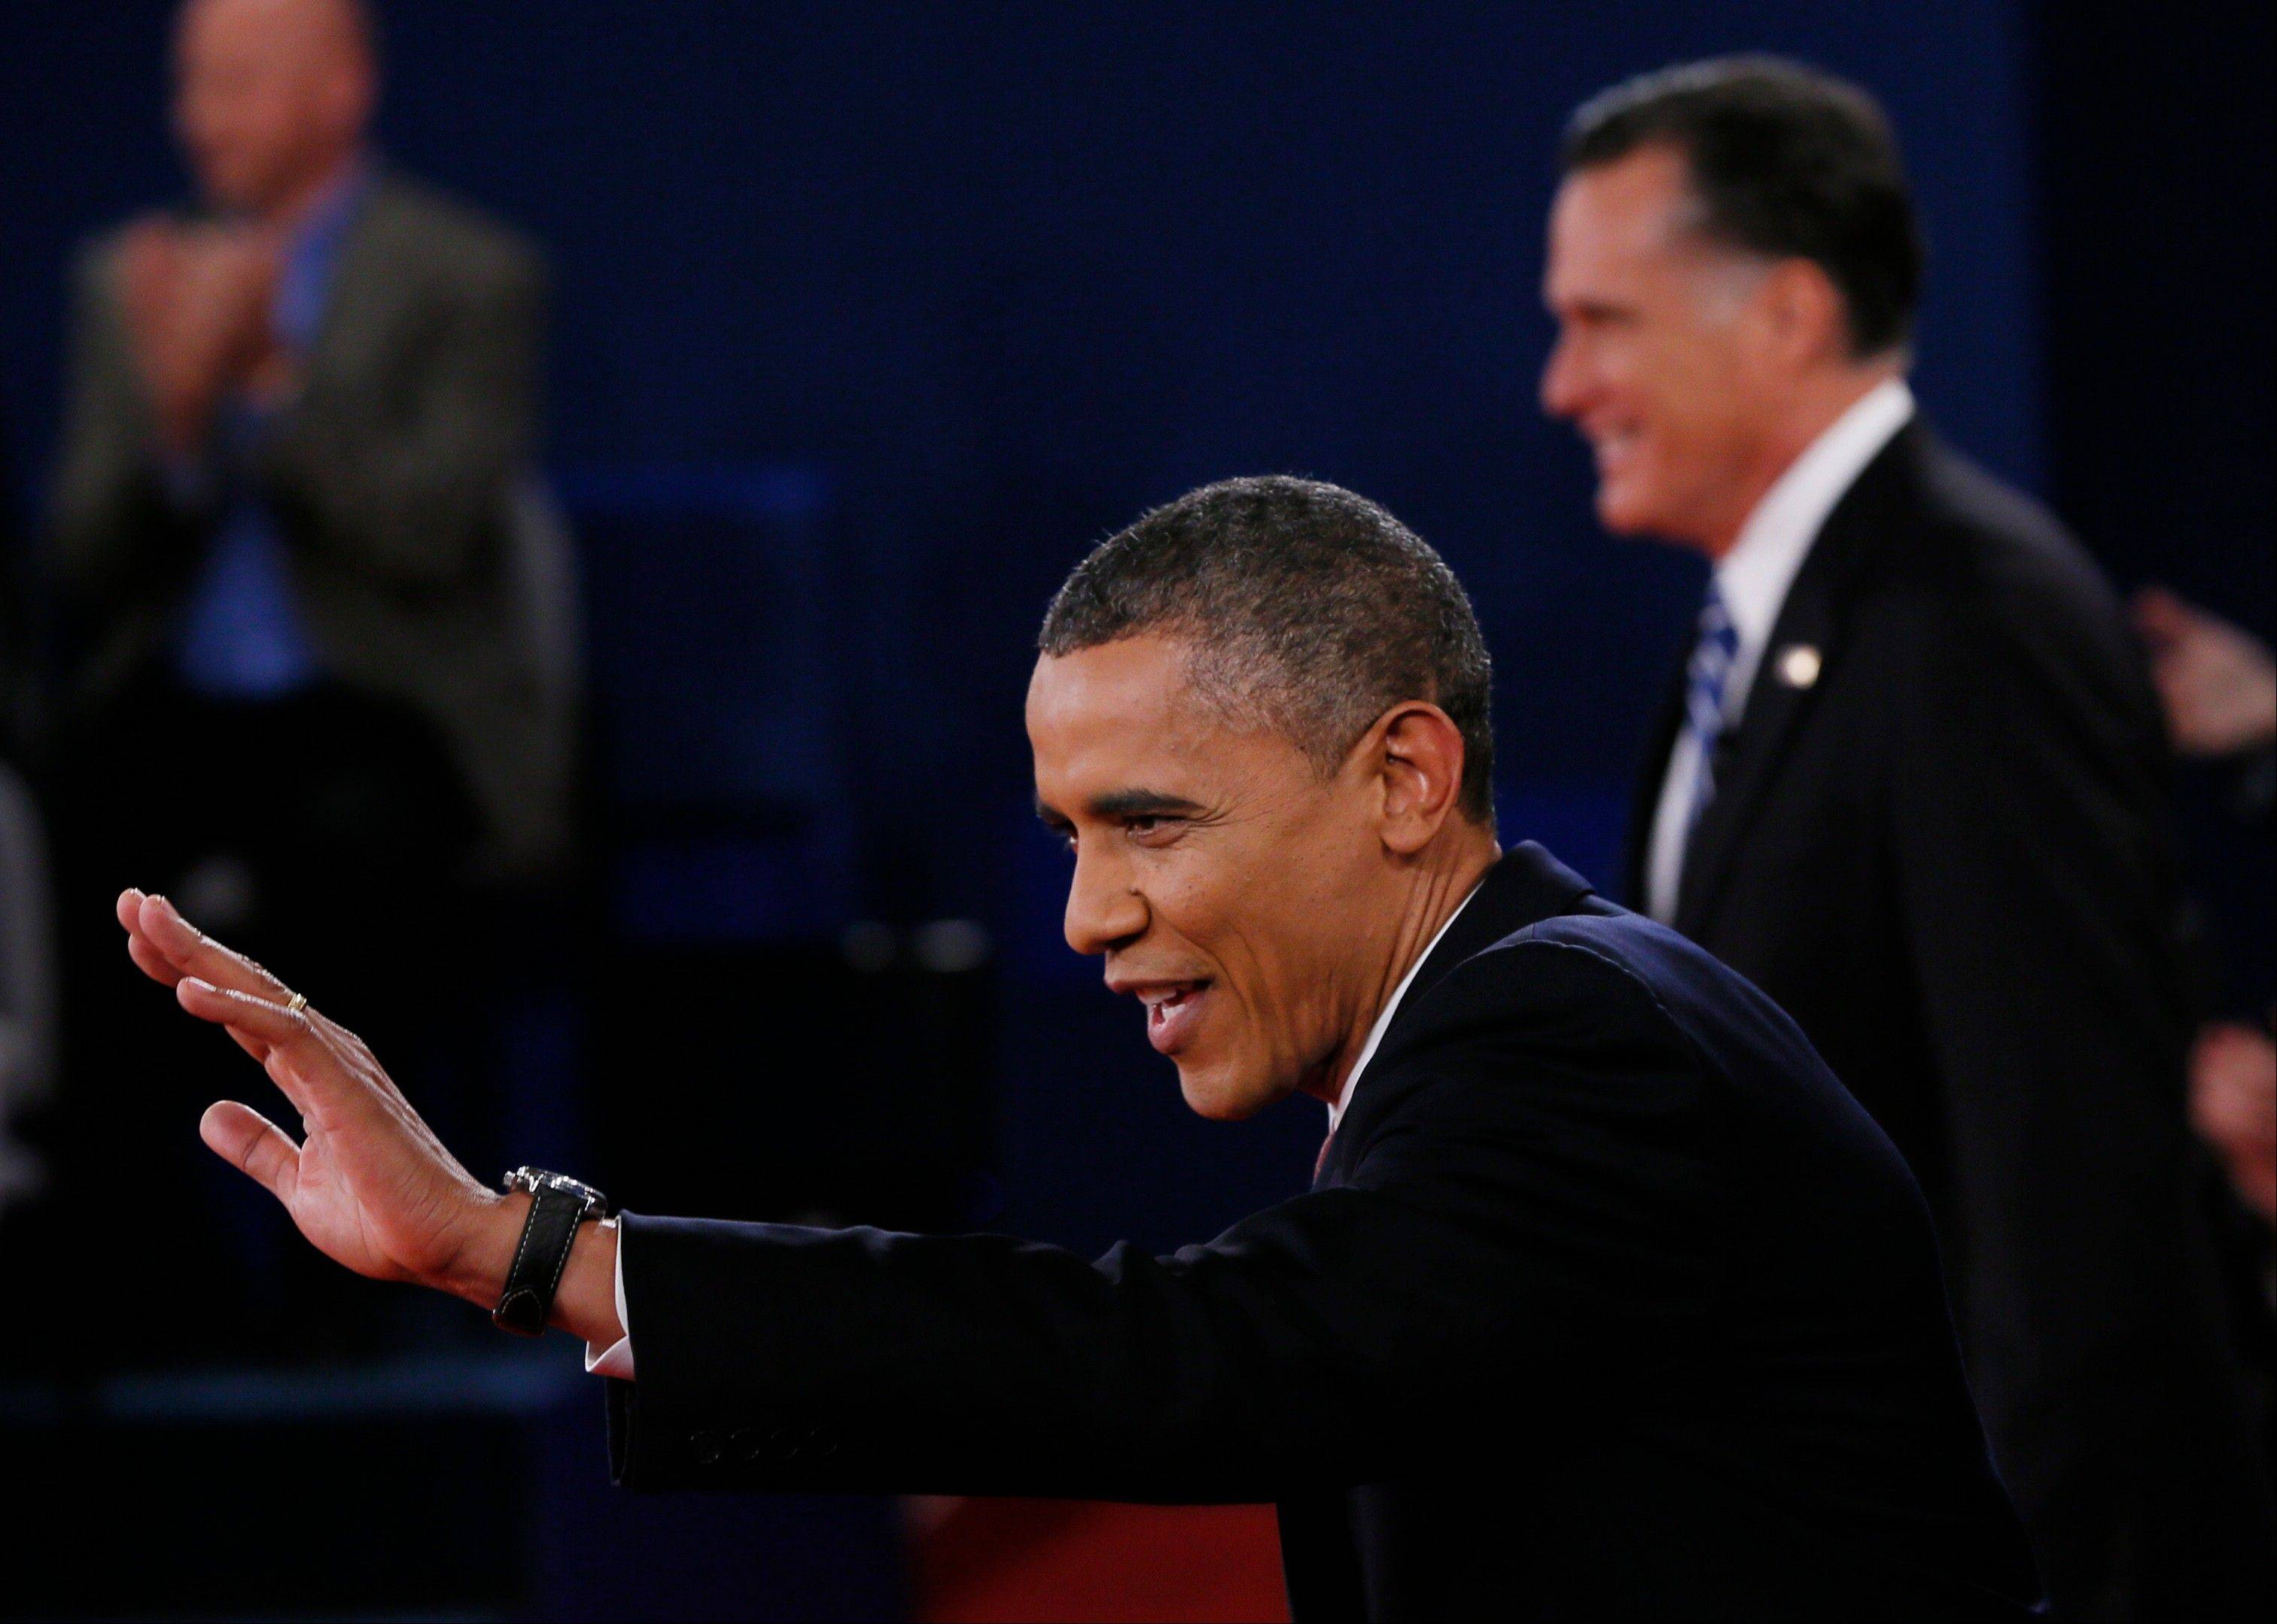 President Barack Obama, left, waves at the start of the second presidential debate with Republican presidential nominee Mitt Romney at Hofstra University, Tuesday, Oct. 16, 2012, in Hempstead, N.Y.